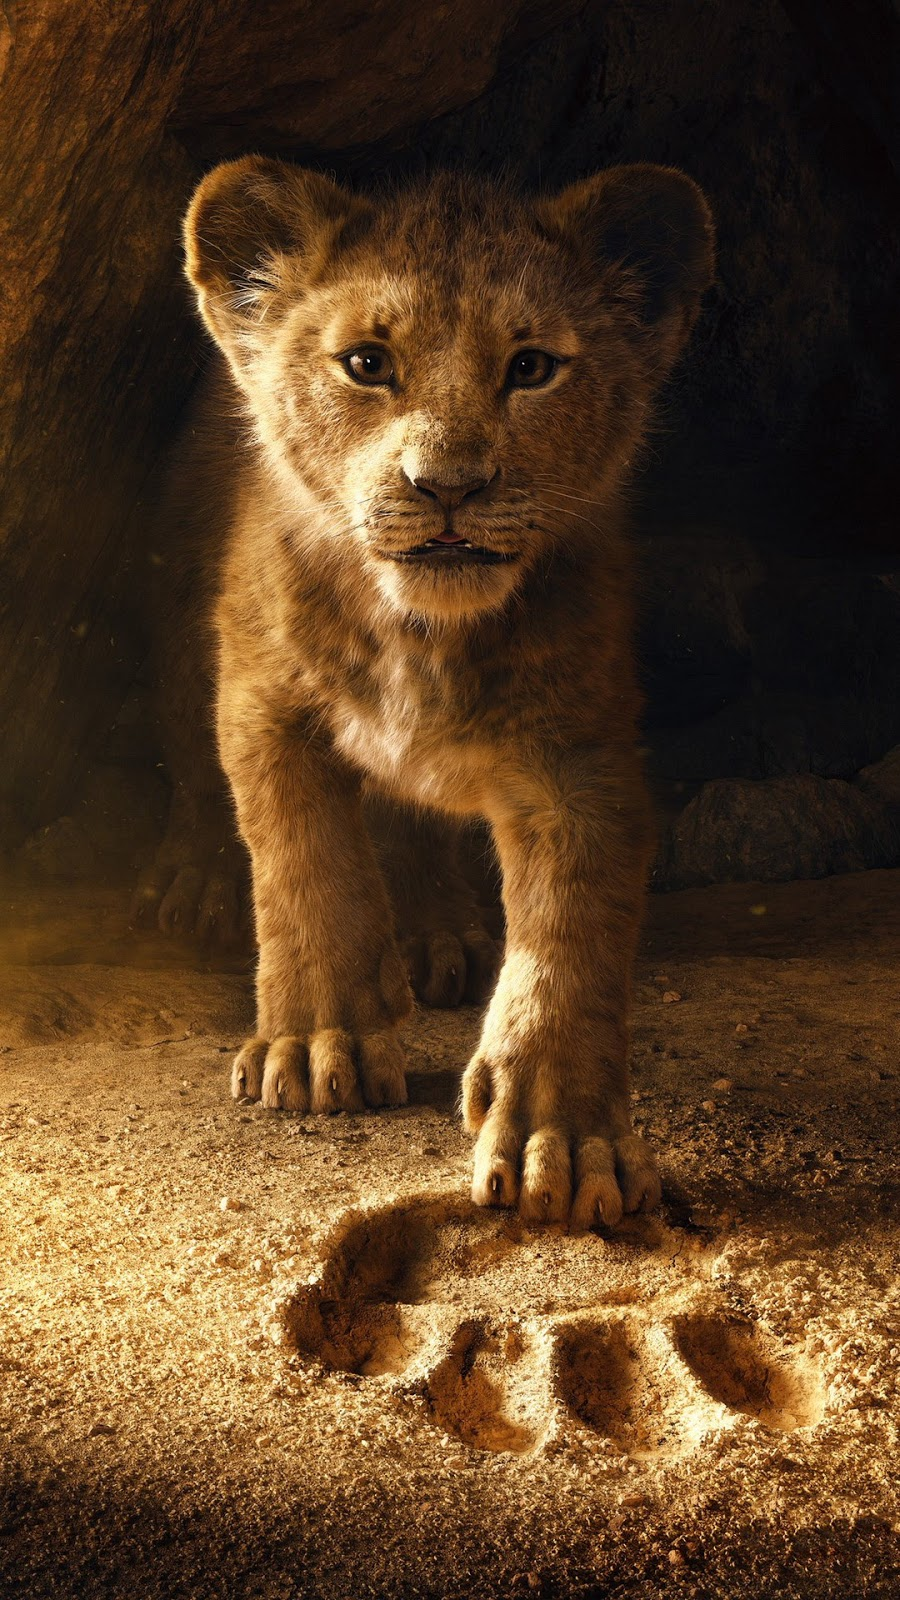 The Lion King 2019 wallpaper for mobile